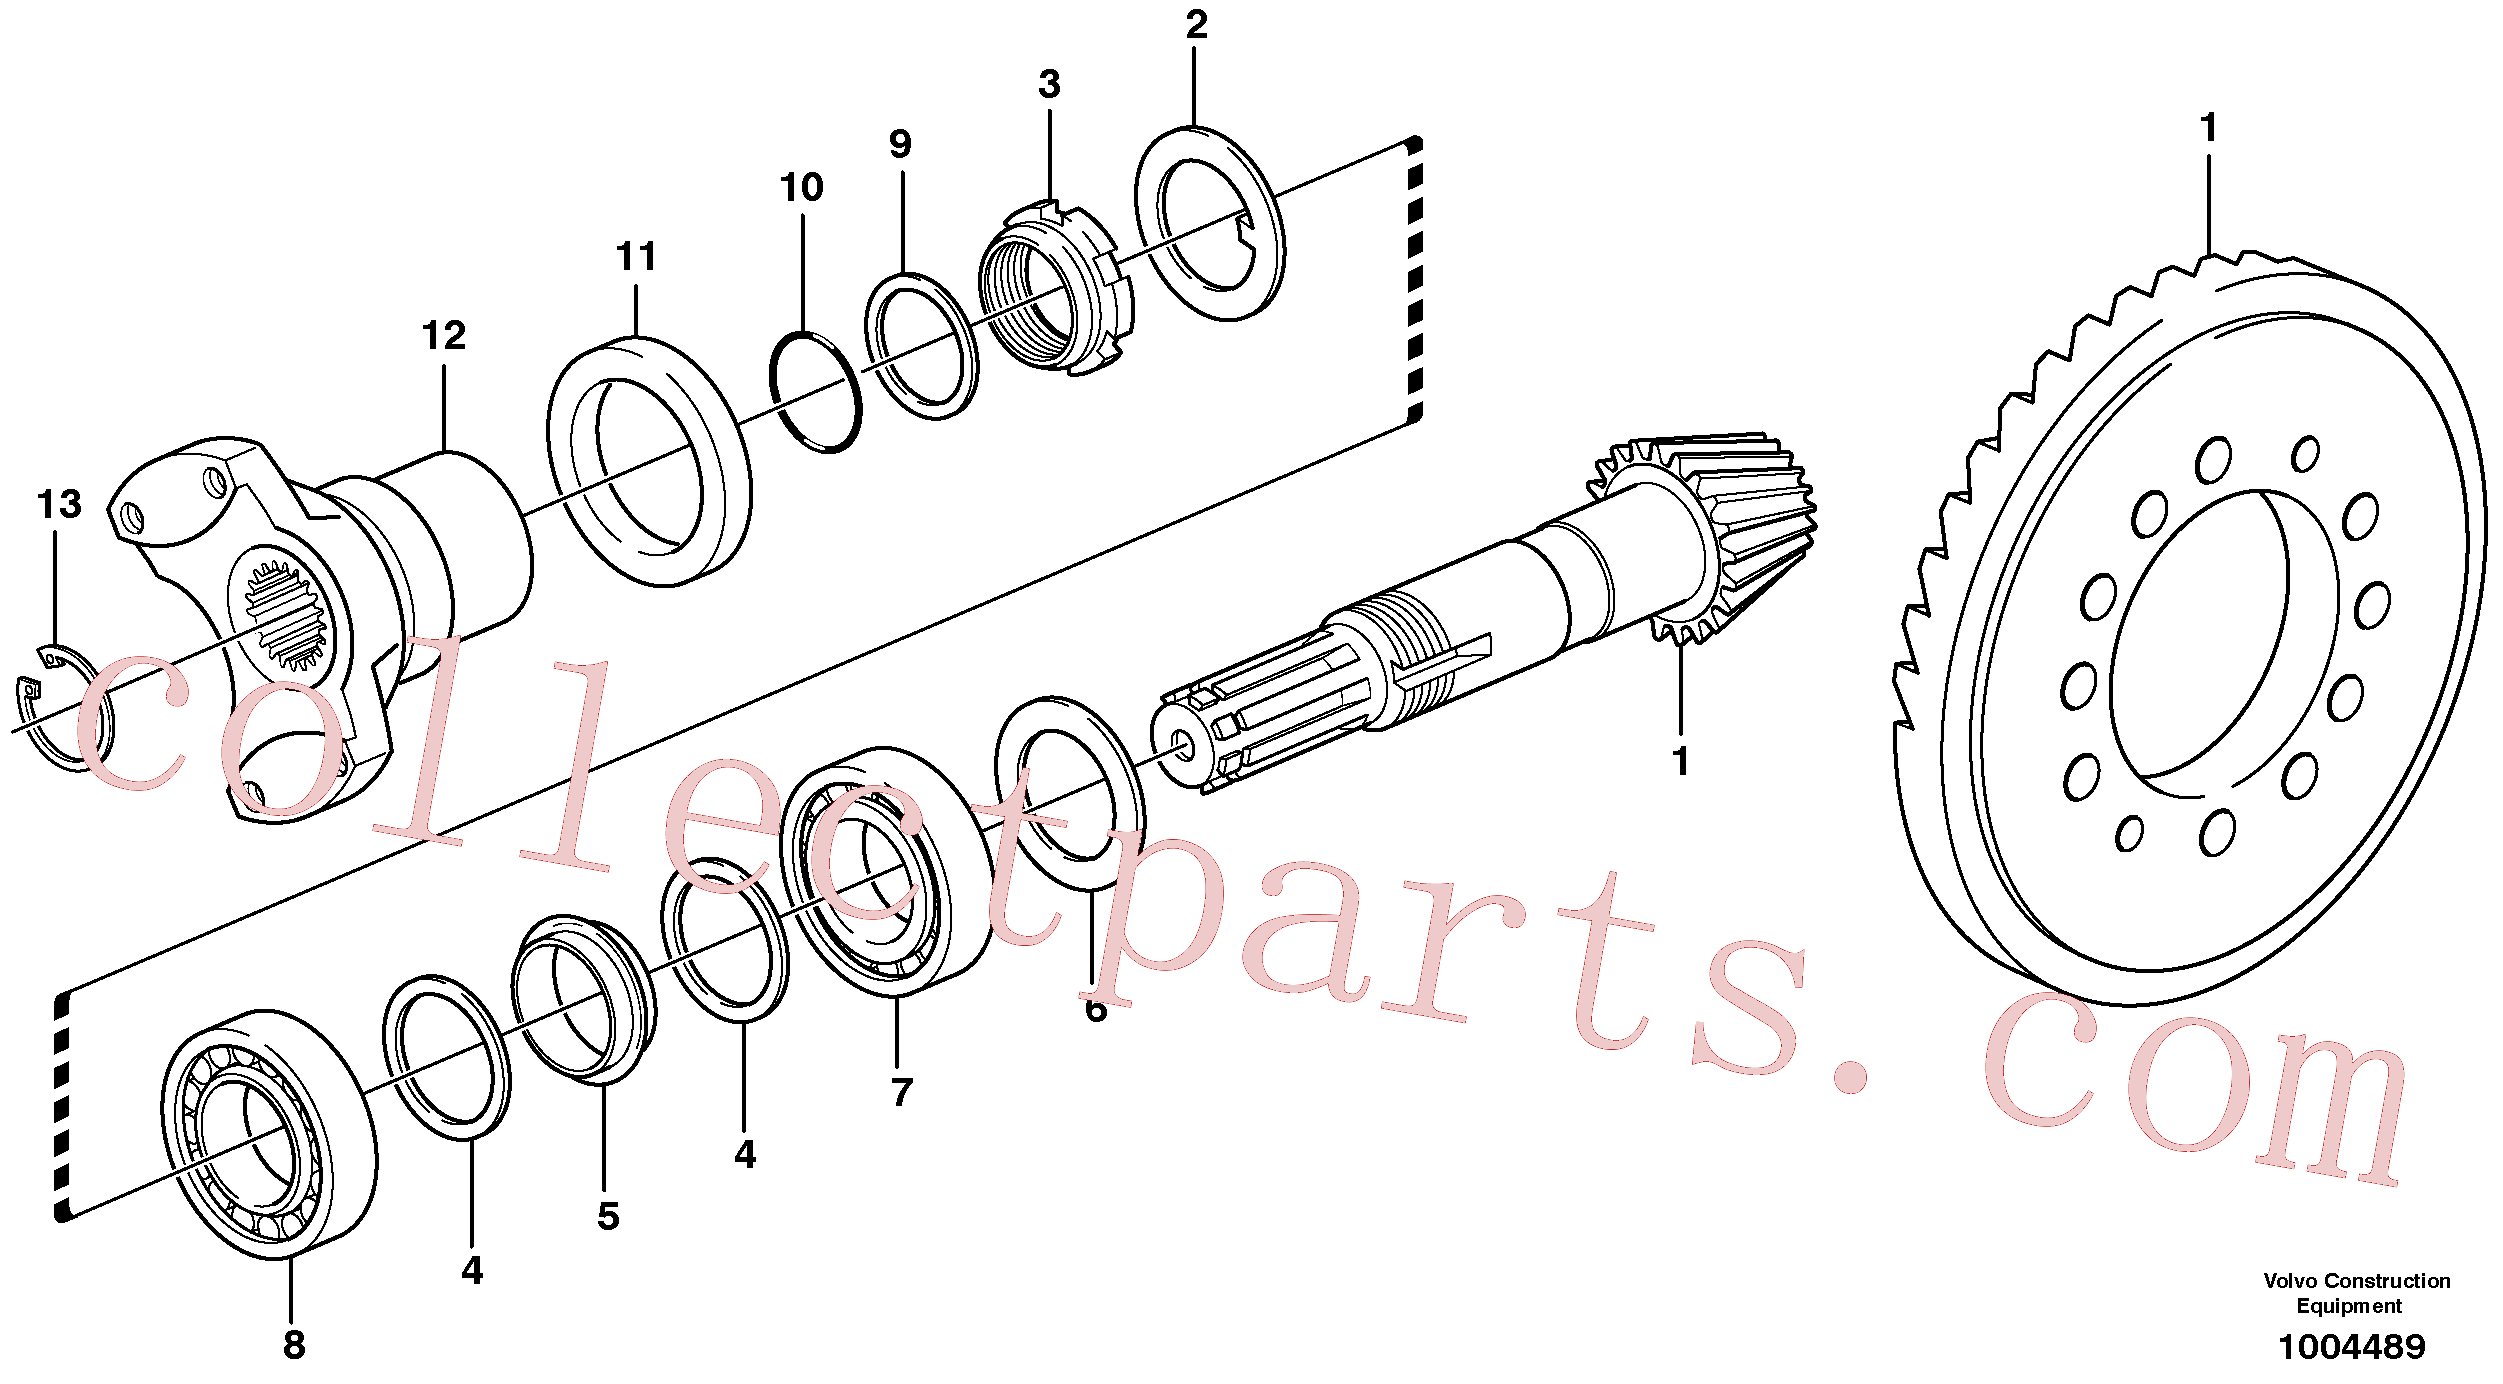 VOE11709293 for Volvo Pinion(1004489 assembly)